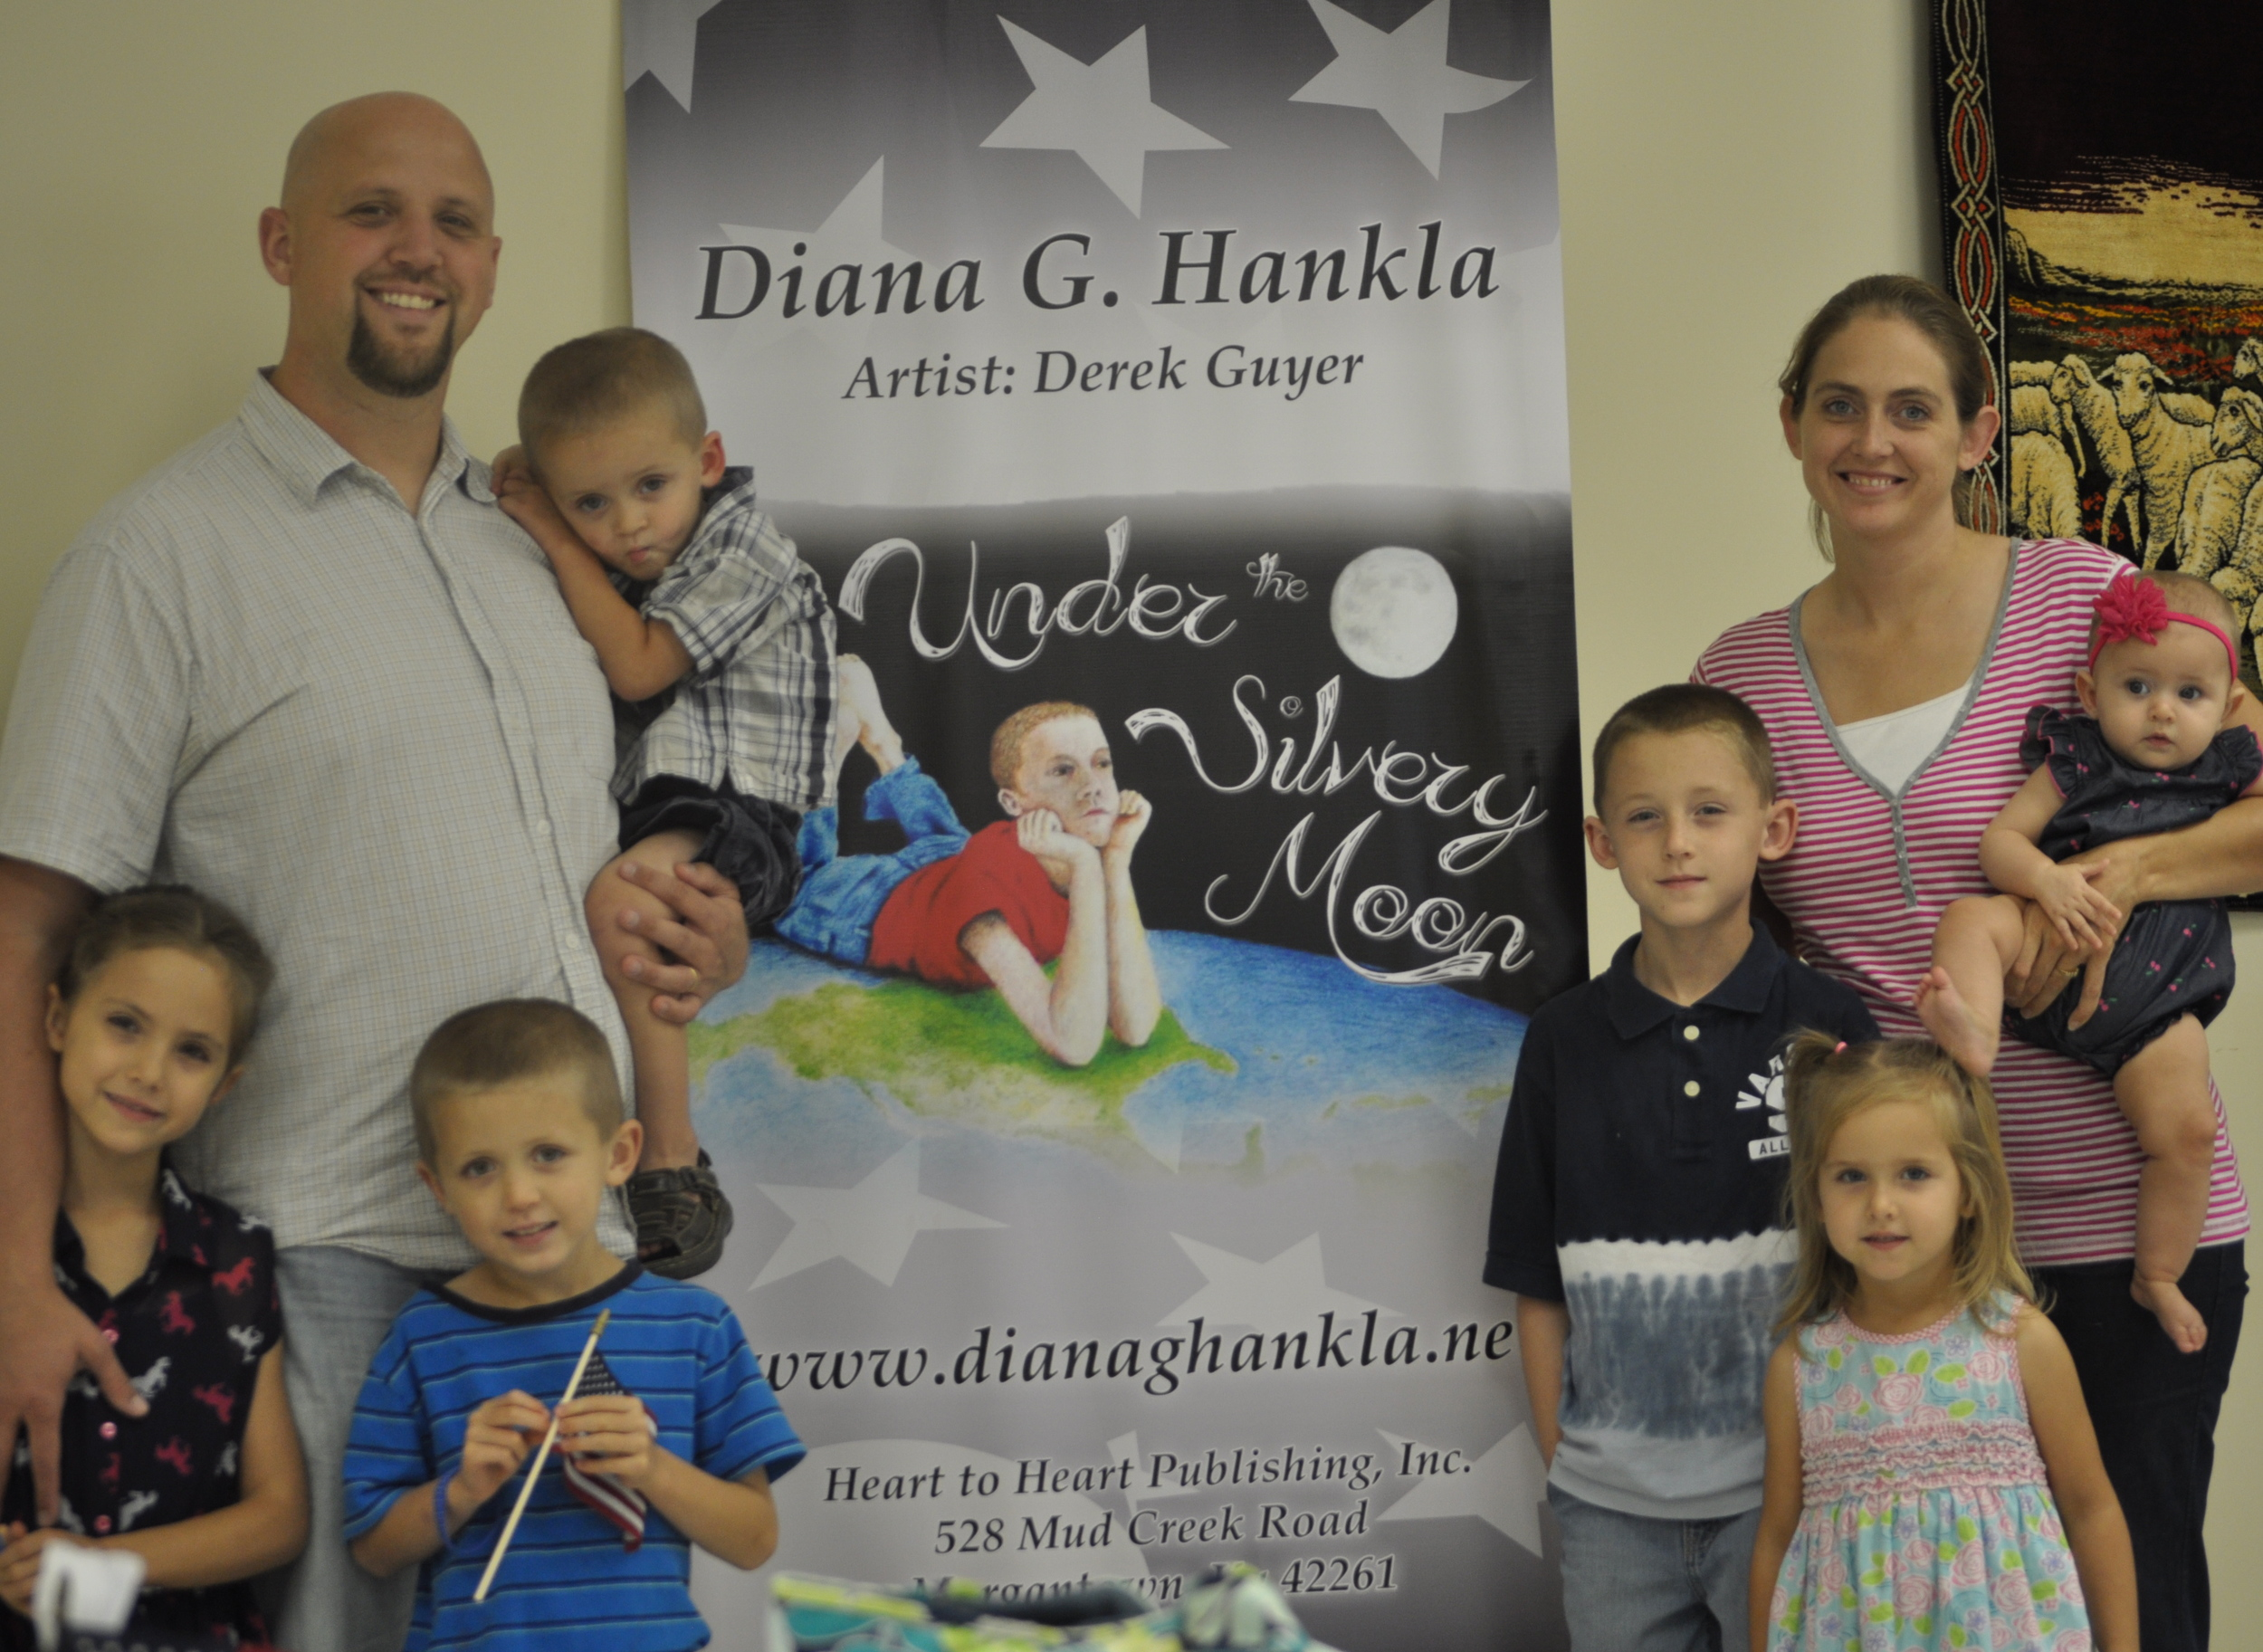 Derek and Lisa Guyer and their children at the first book signing for the release of Under the Silvery Moon.